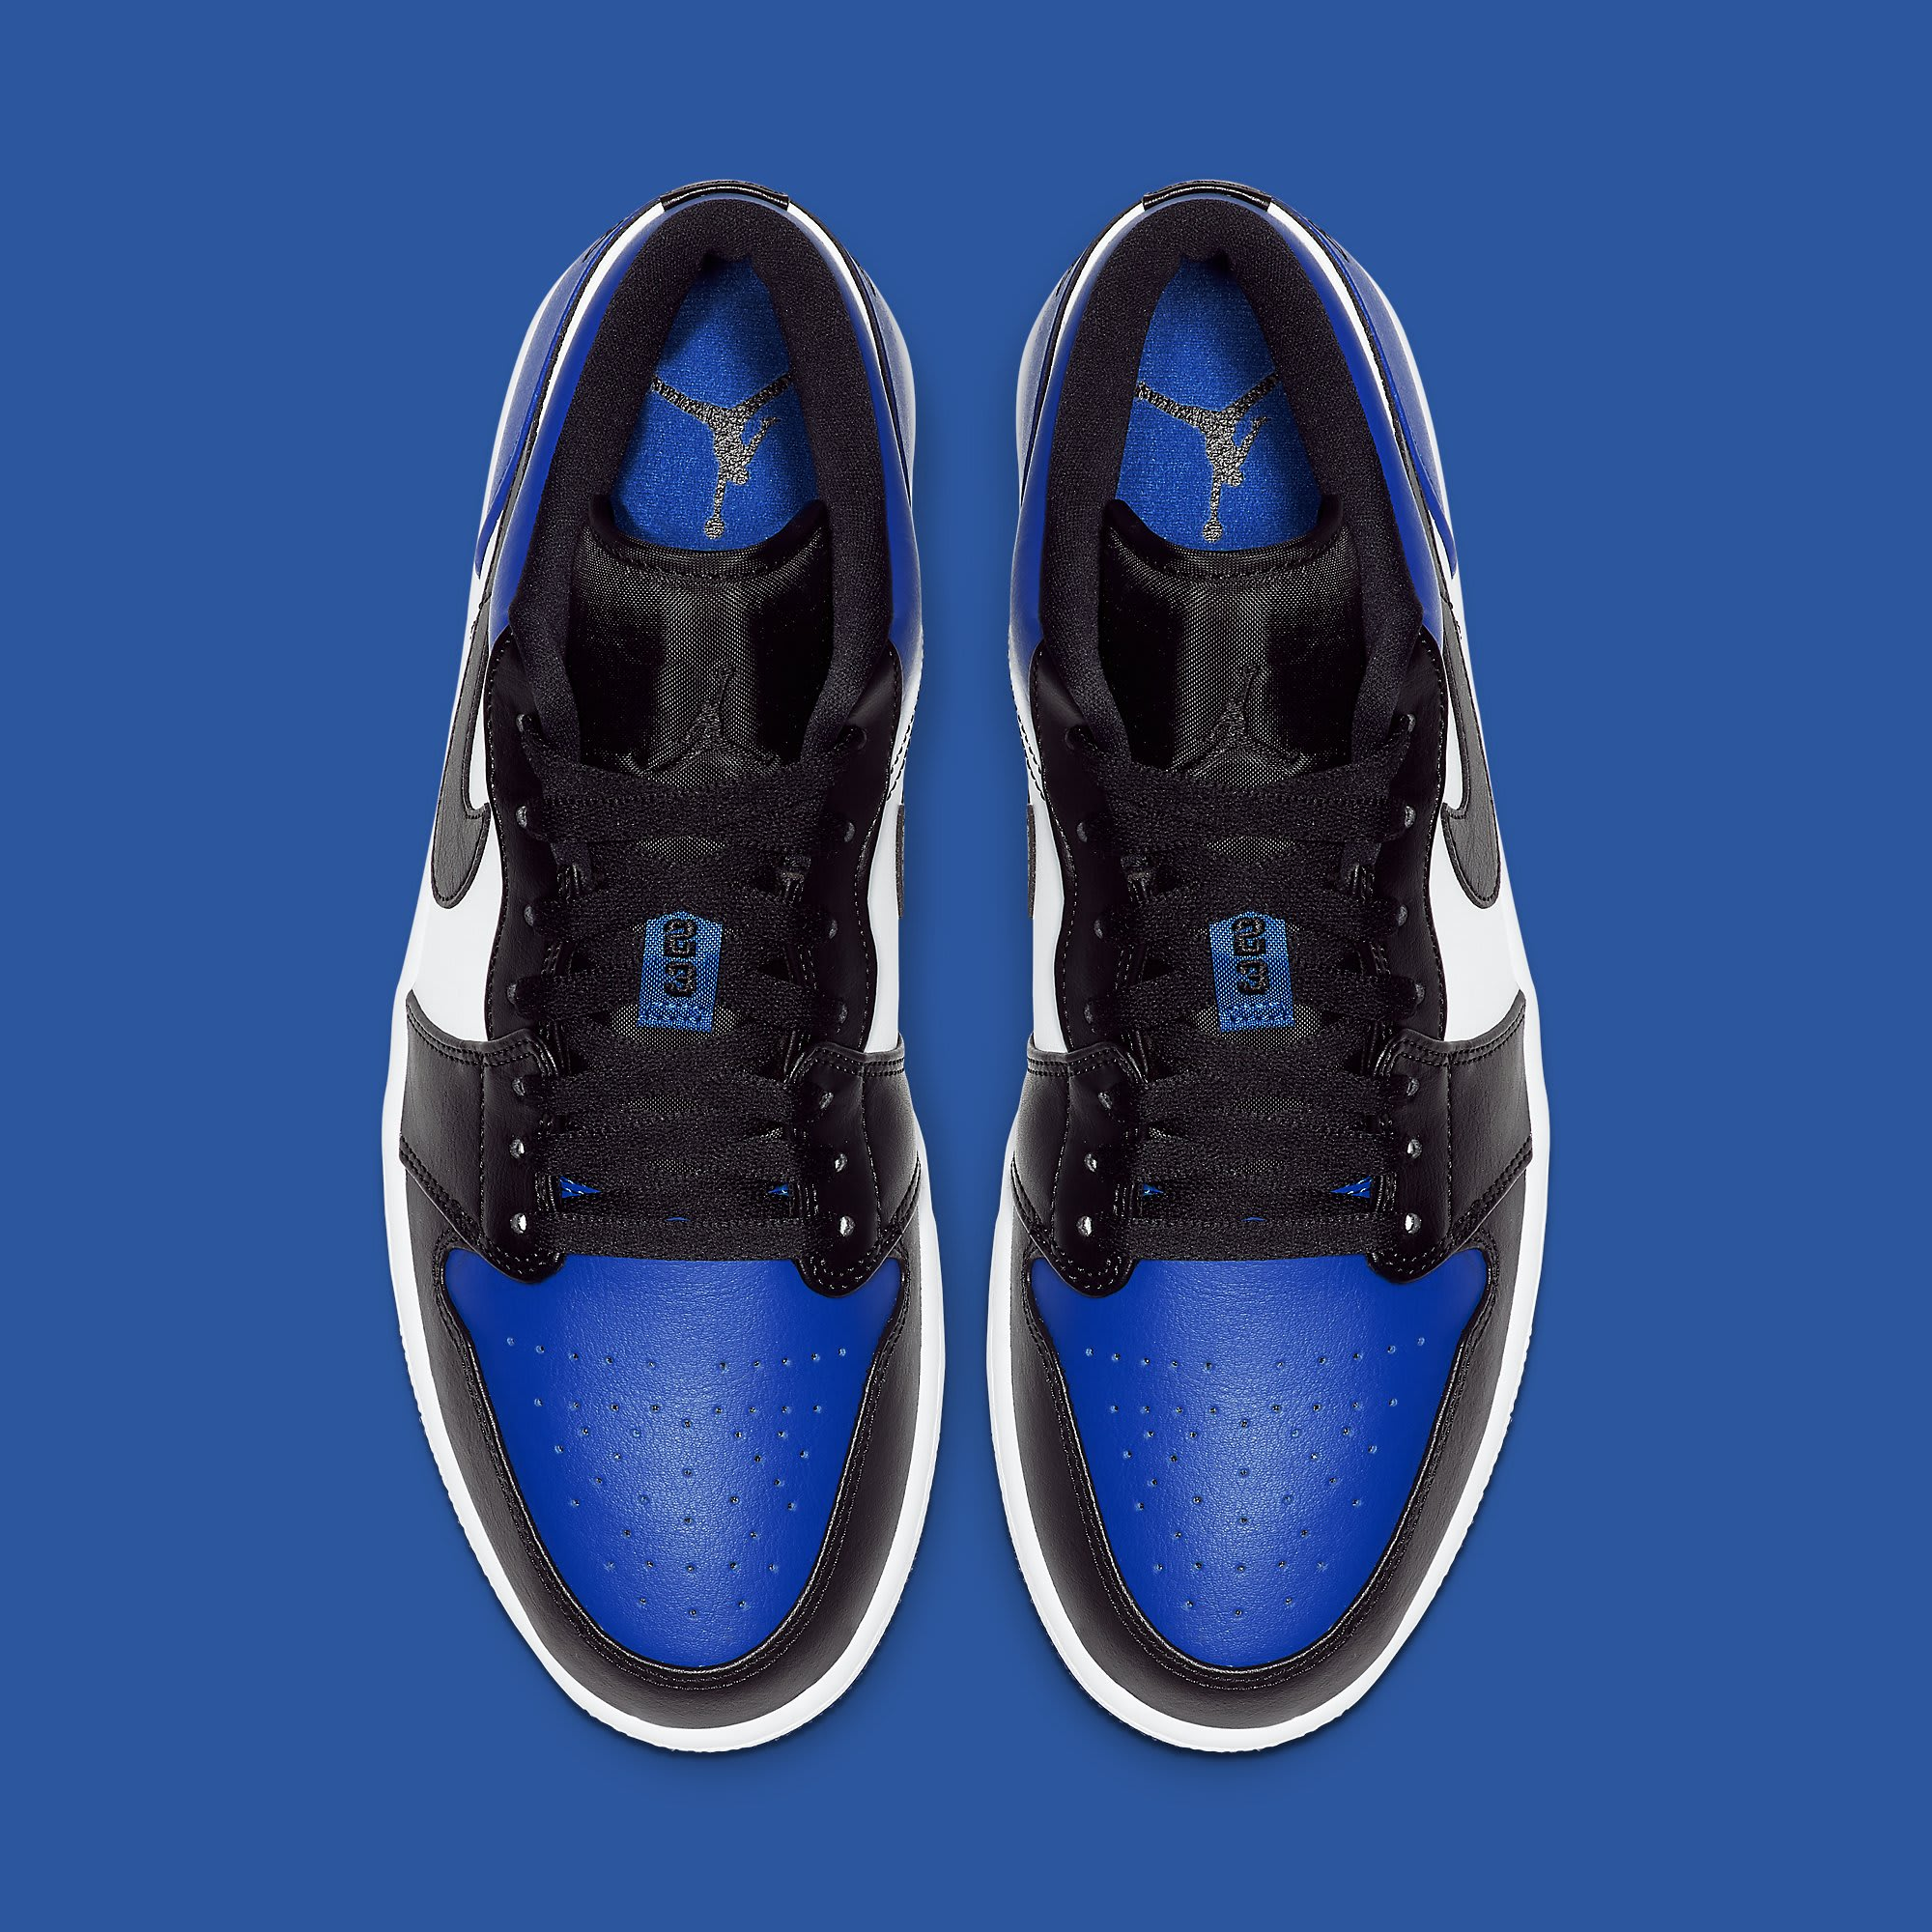 Air Jordan 1 Low Royal Toe Release Date CQ9446-400 Top